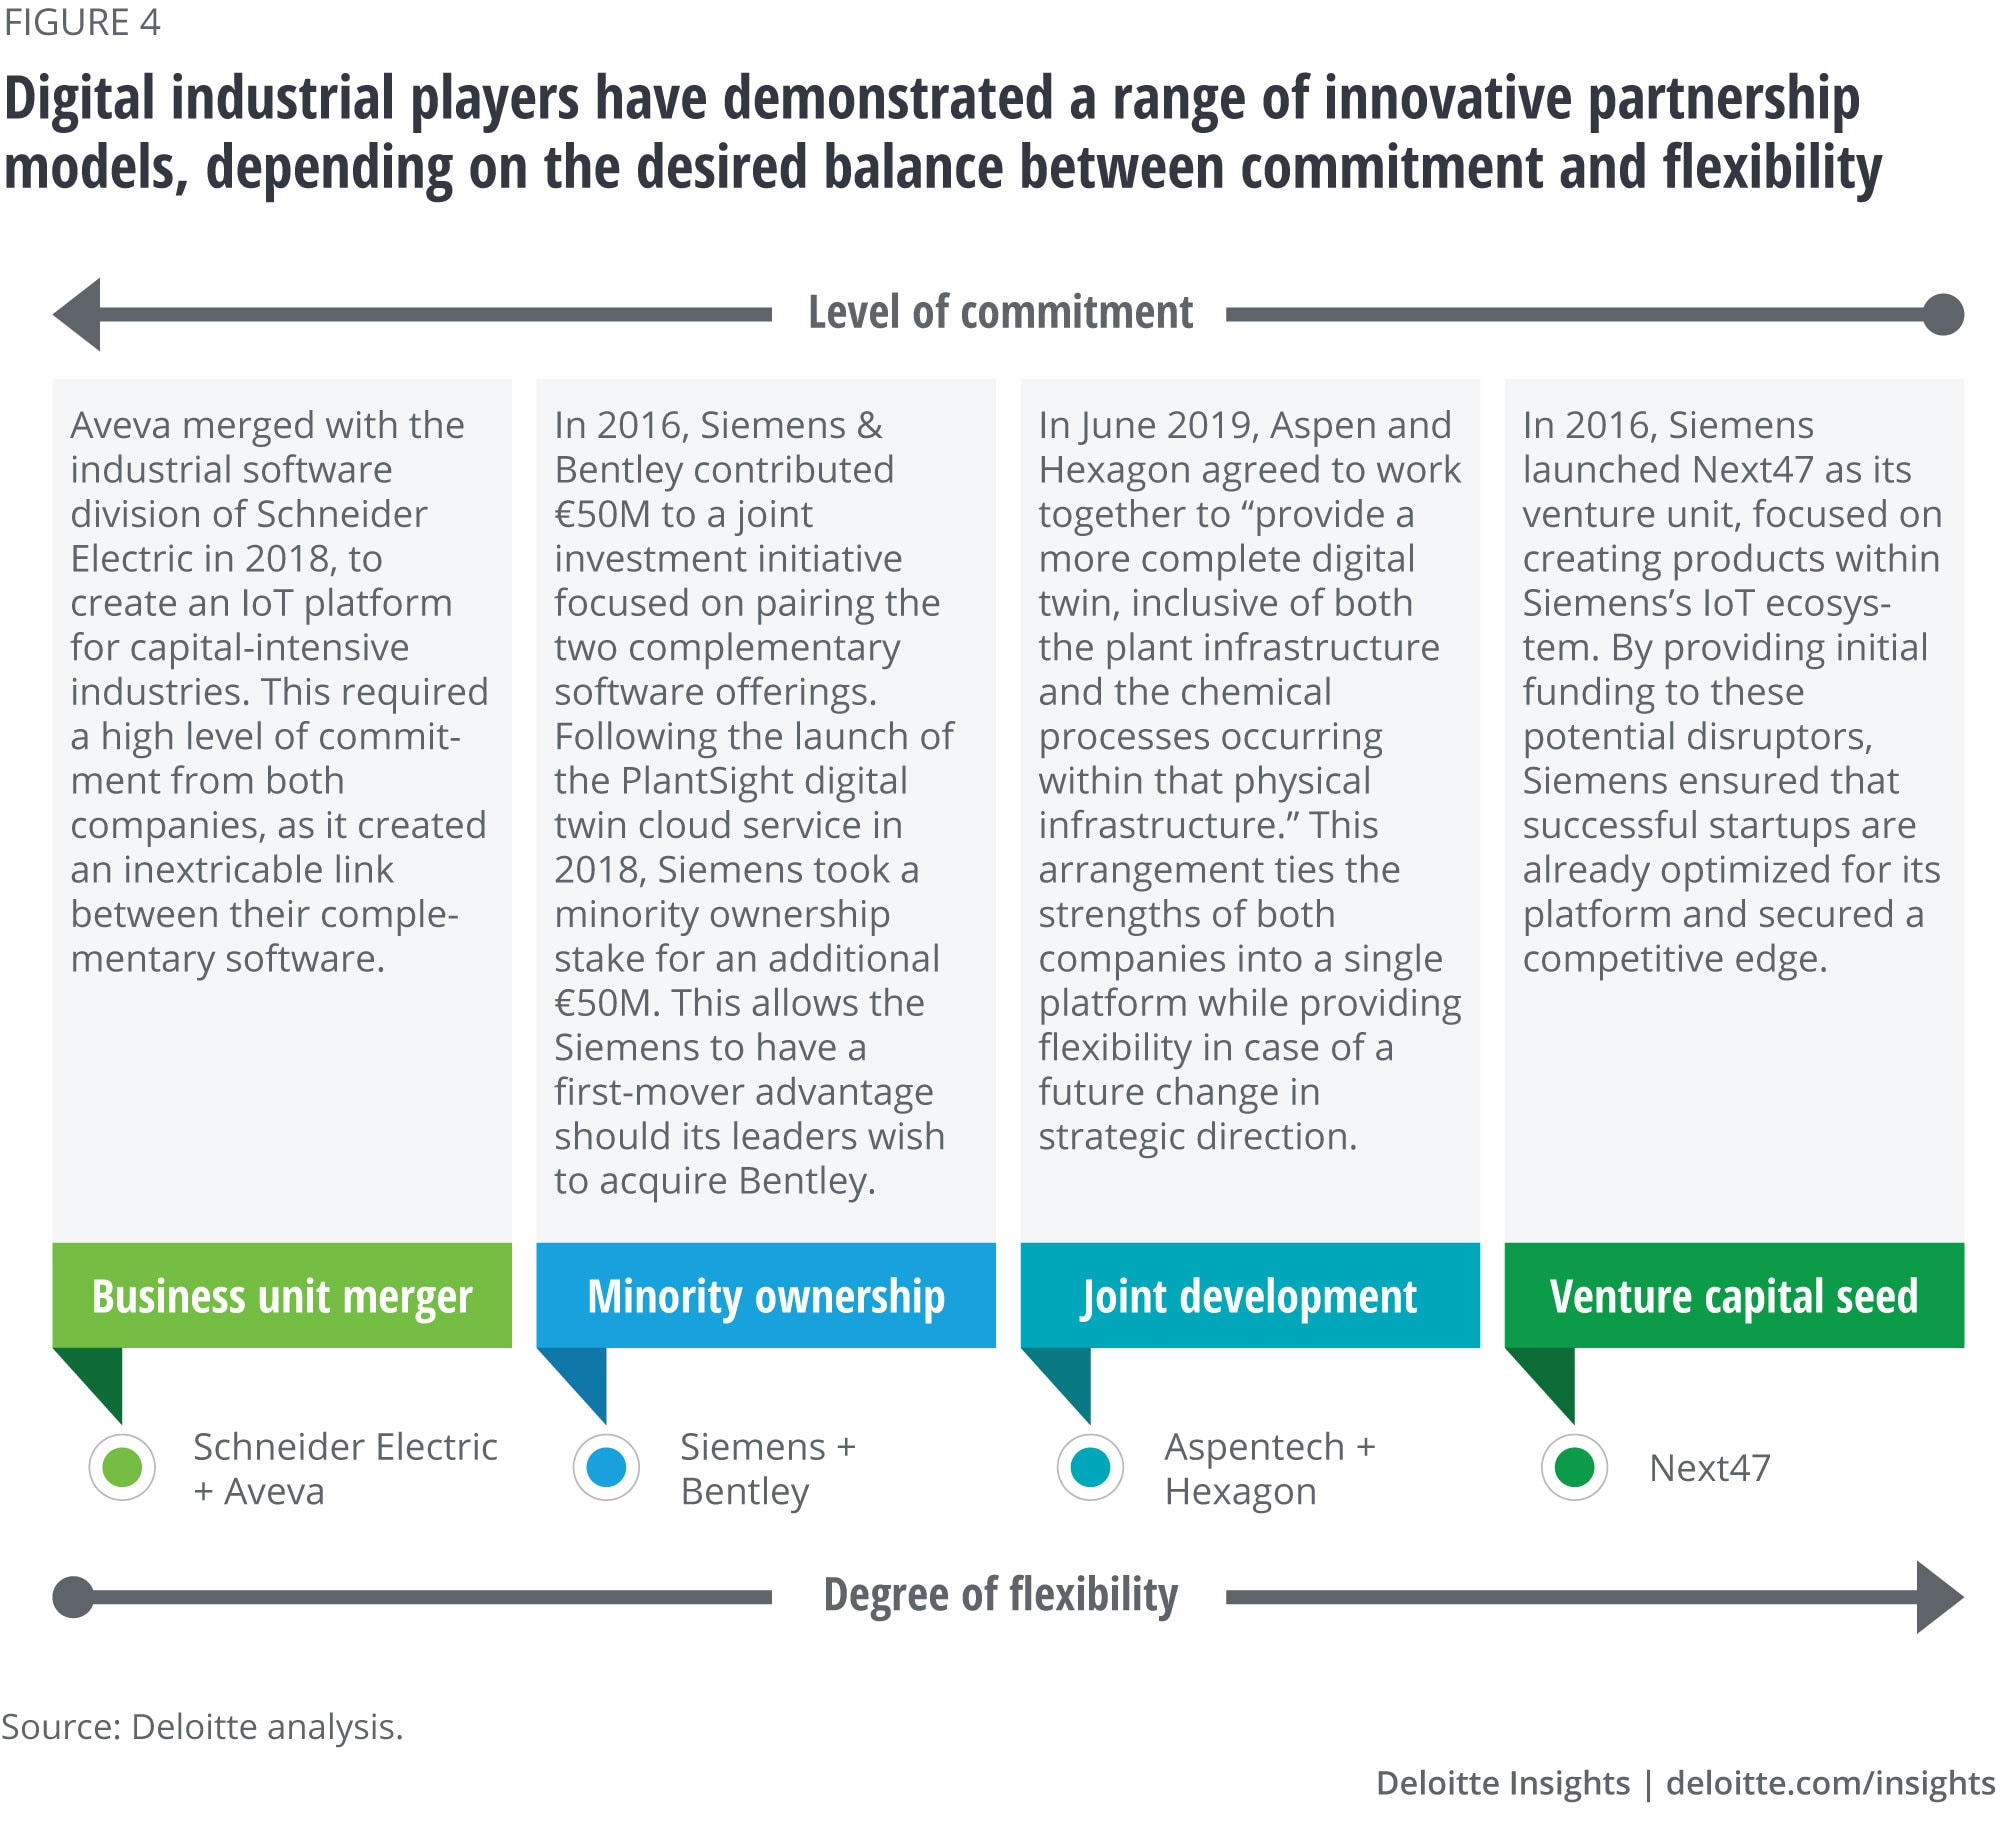 Digital industrial players have demonstrated a range of innovative partnership models, depending on the desired balance between commitment and flexibility